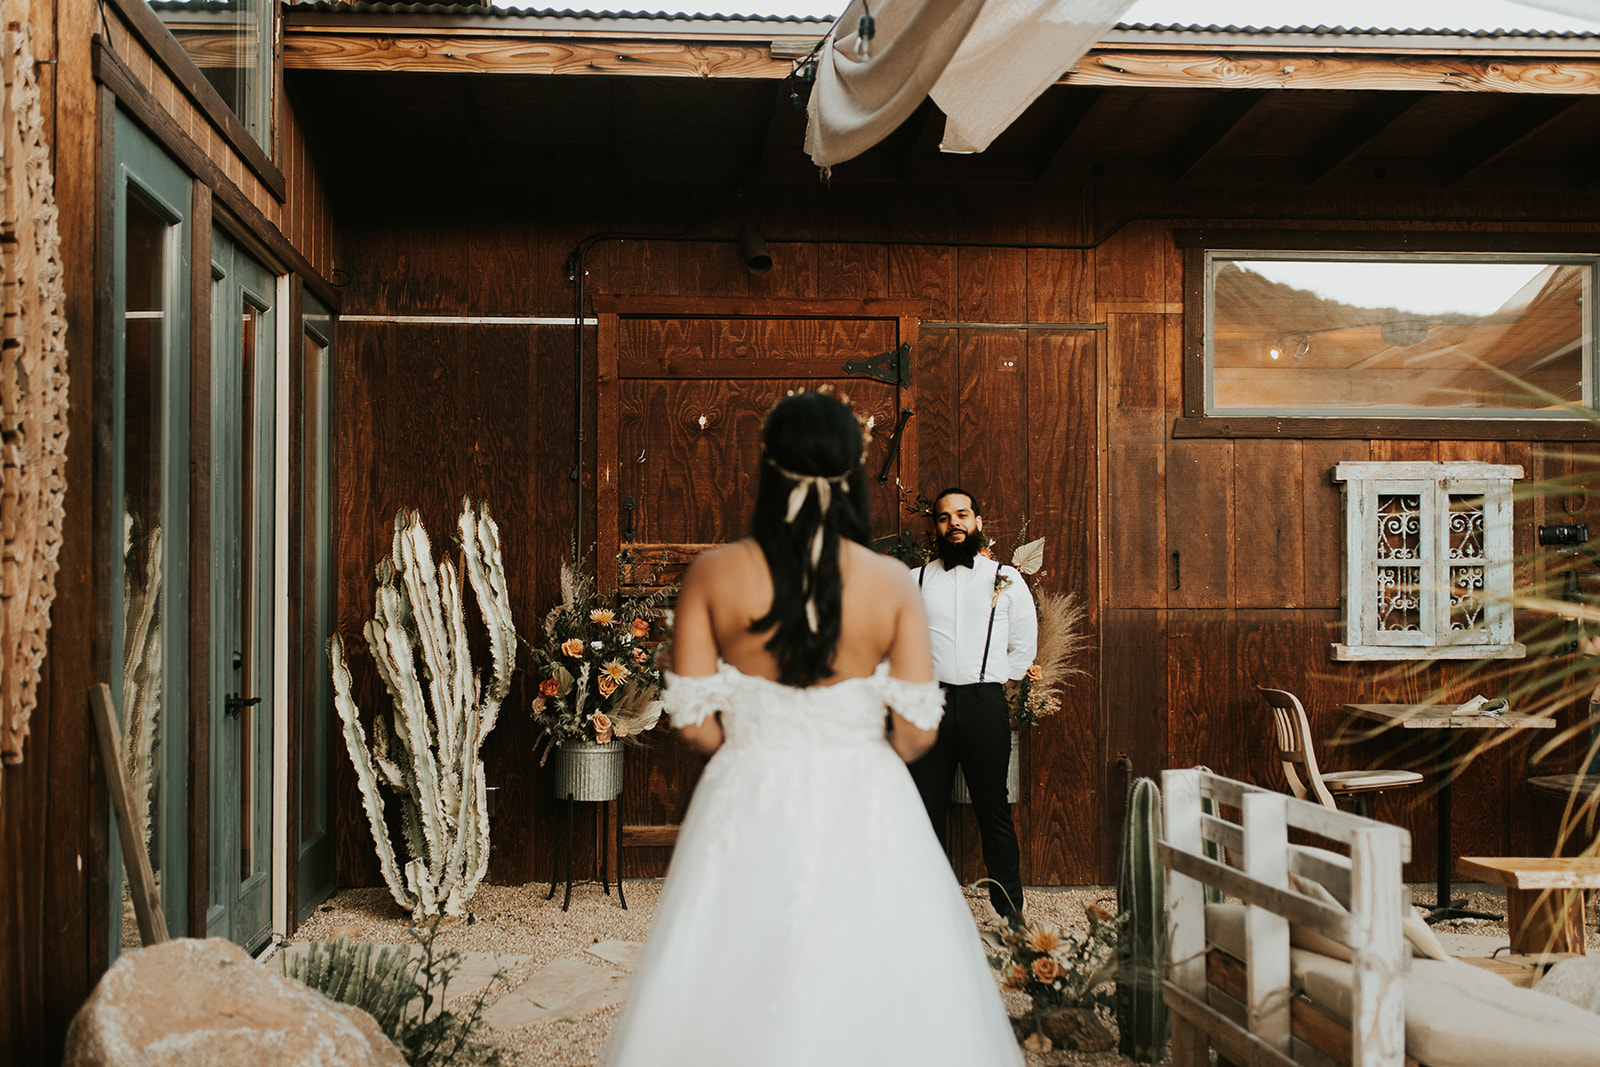 Joshua_Tree_Elopement_Hannah_Alena_Photography-165.jpg